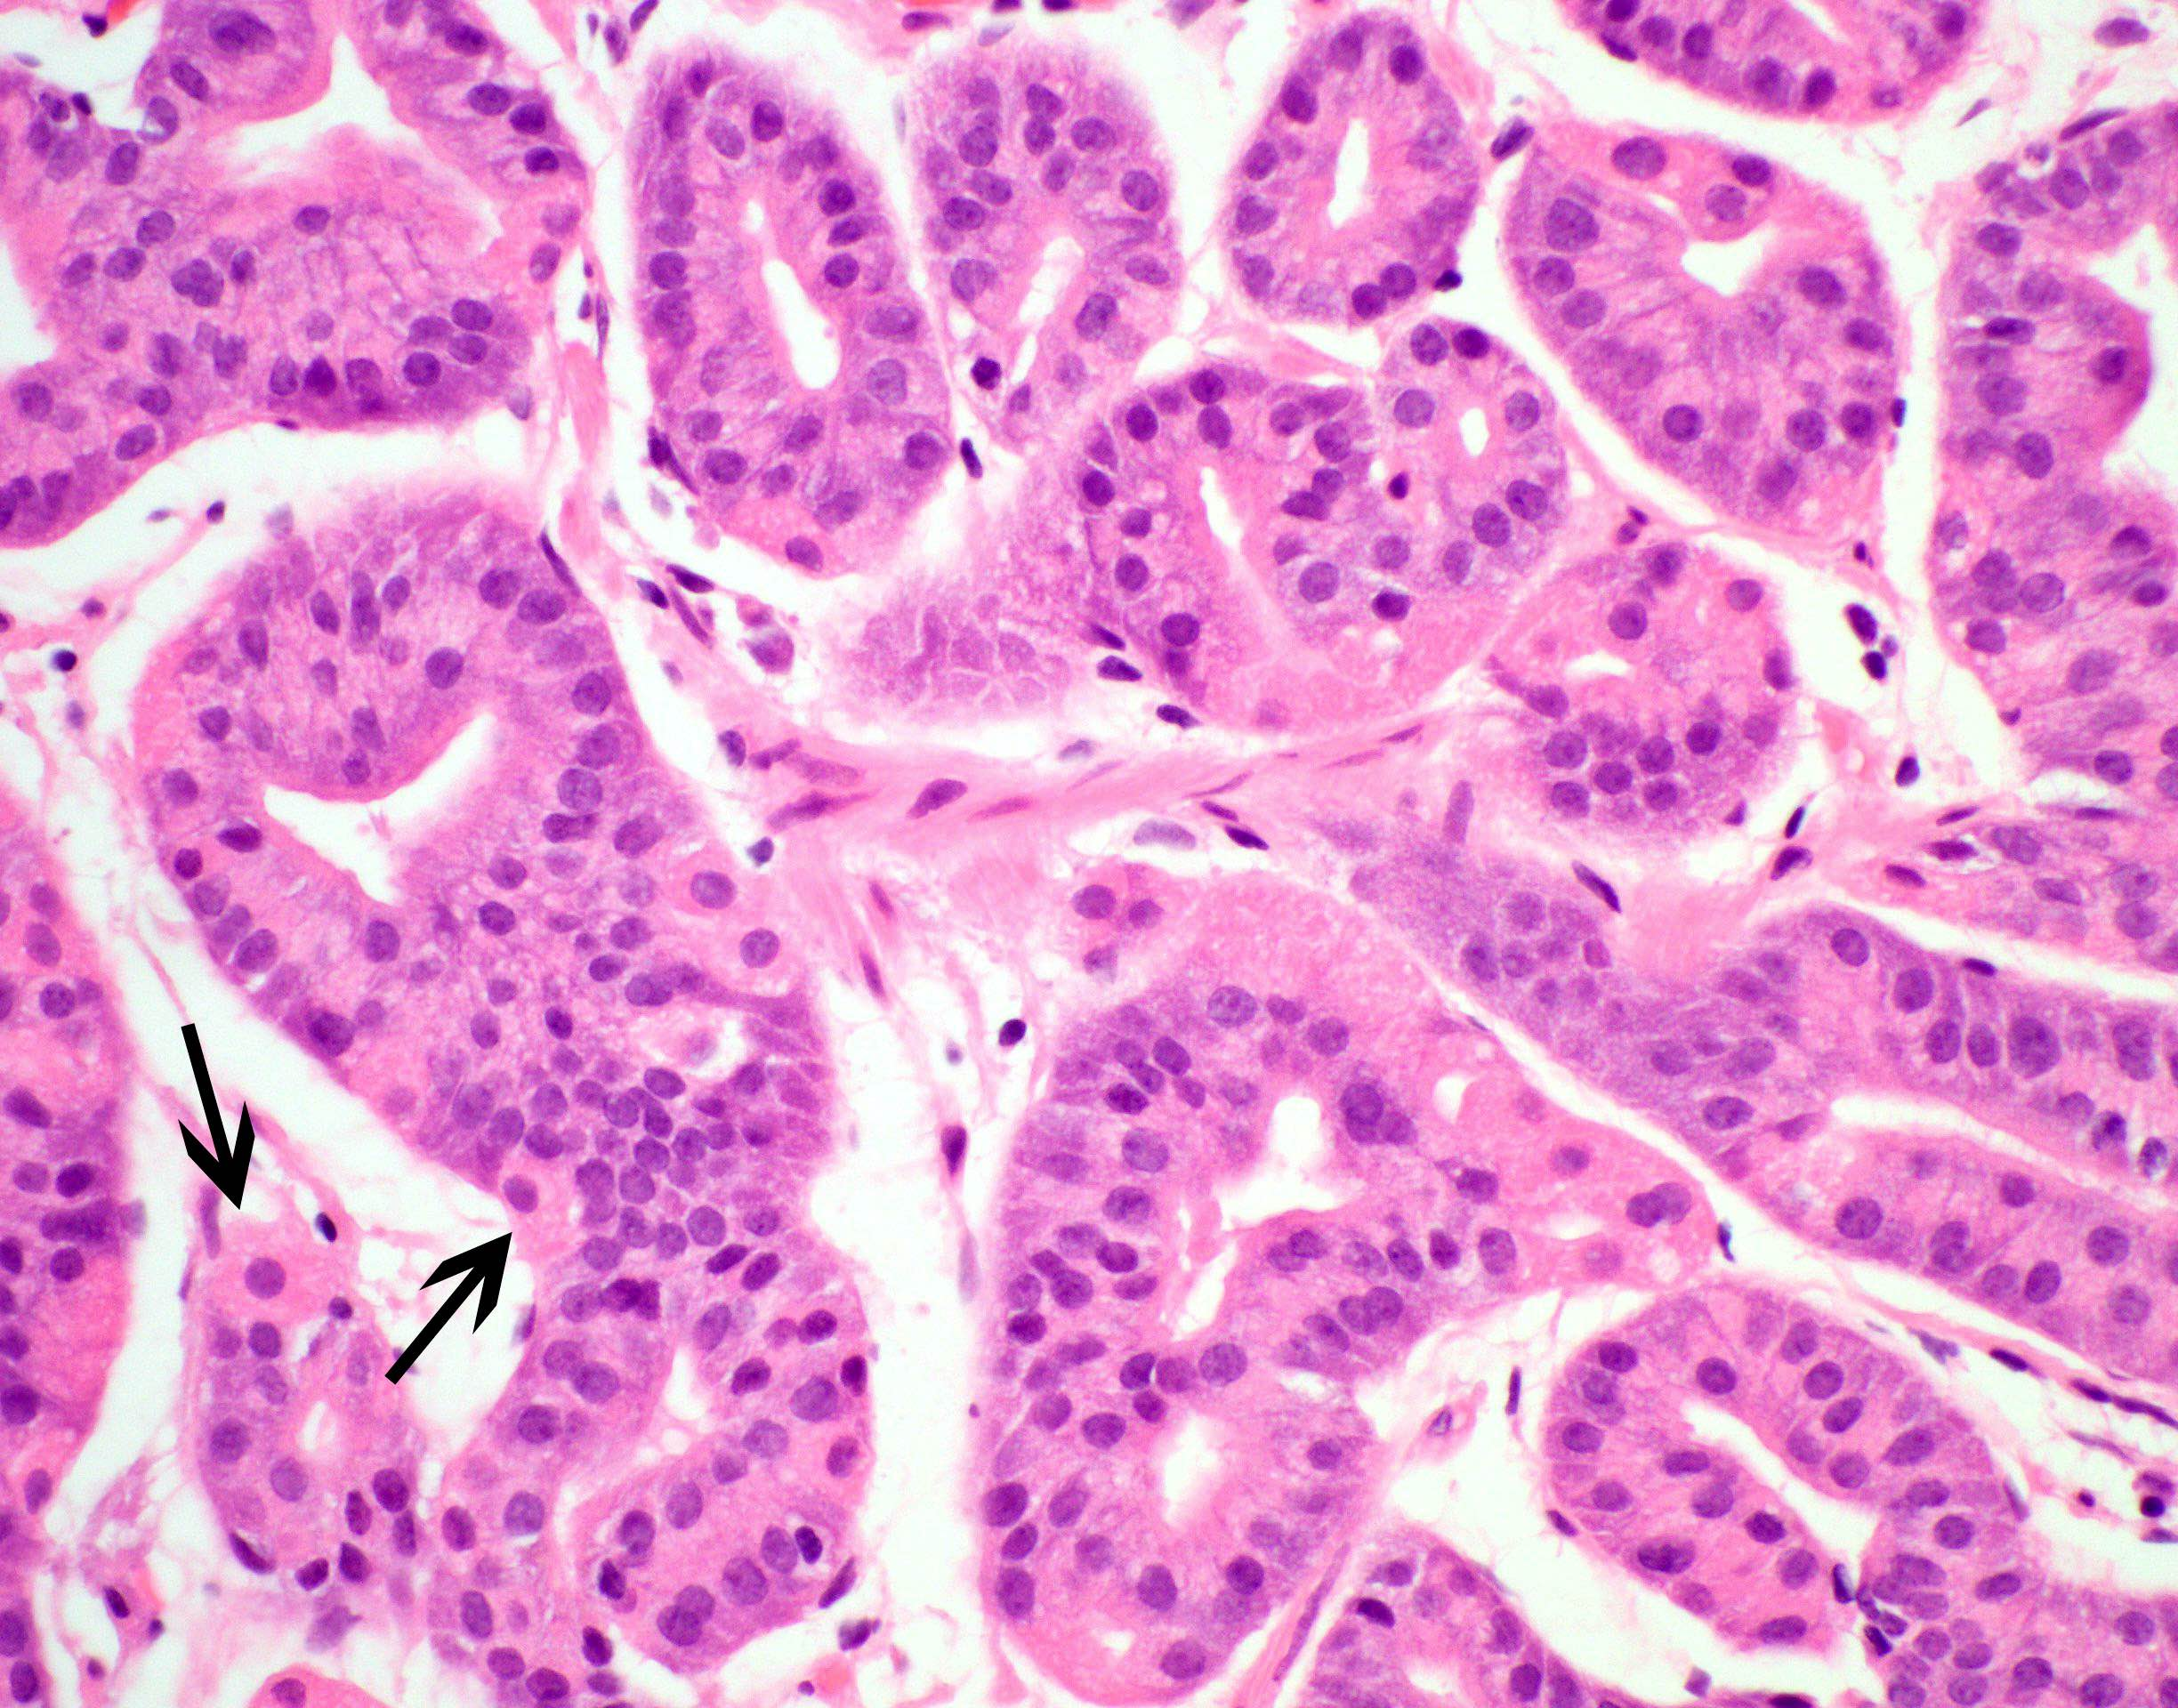 Predominantly chief cell differentiation